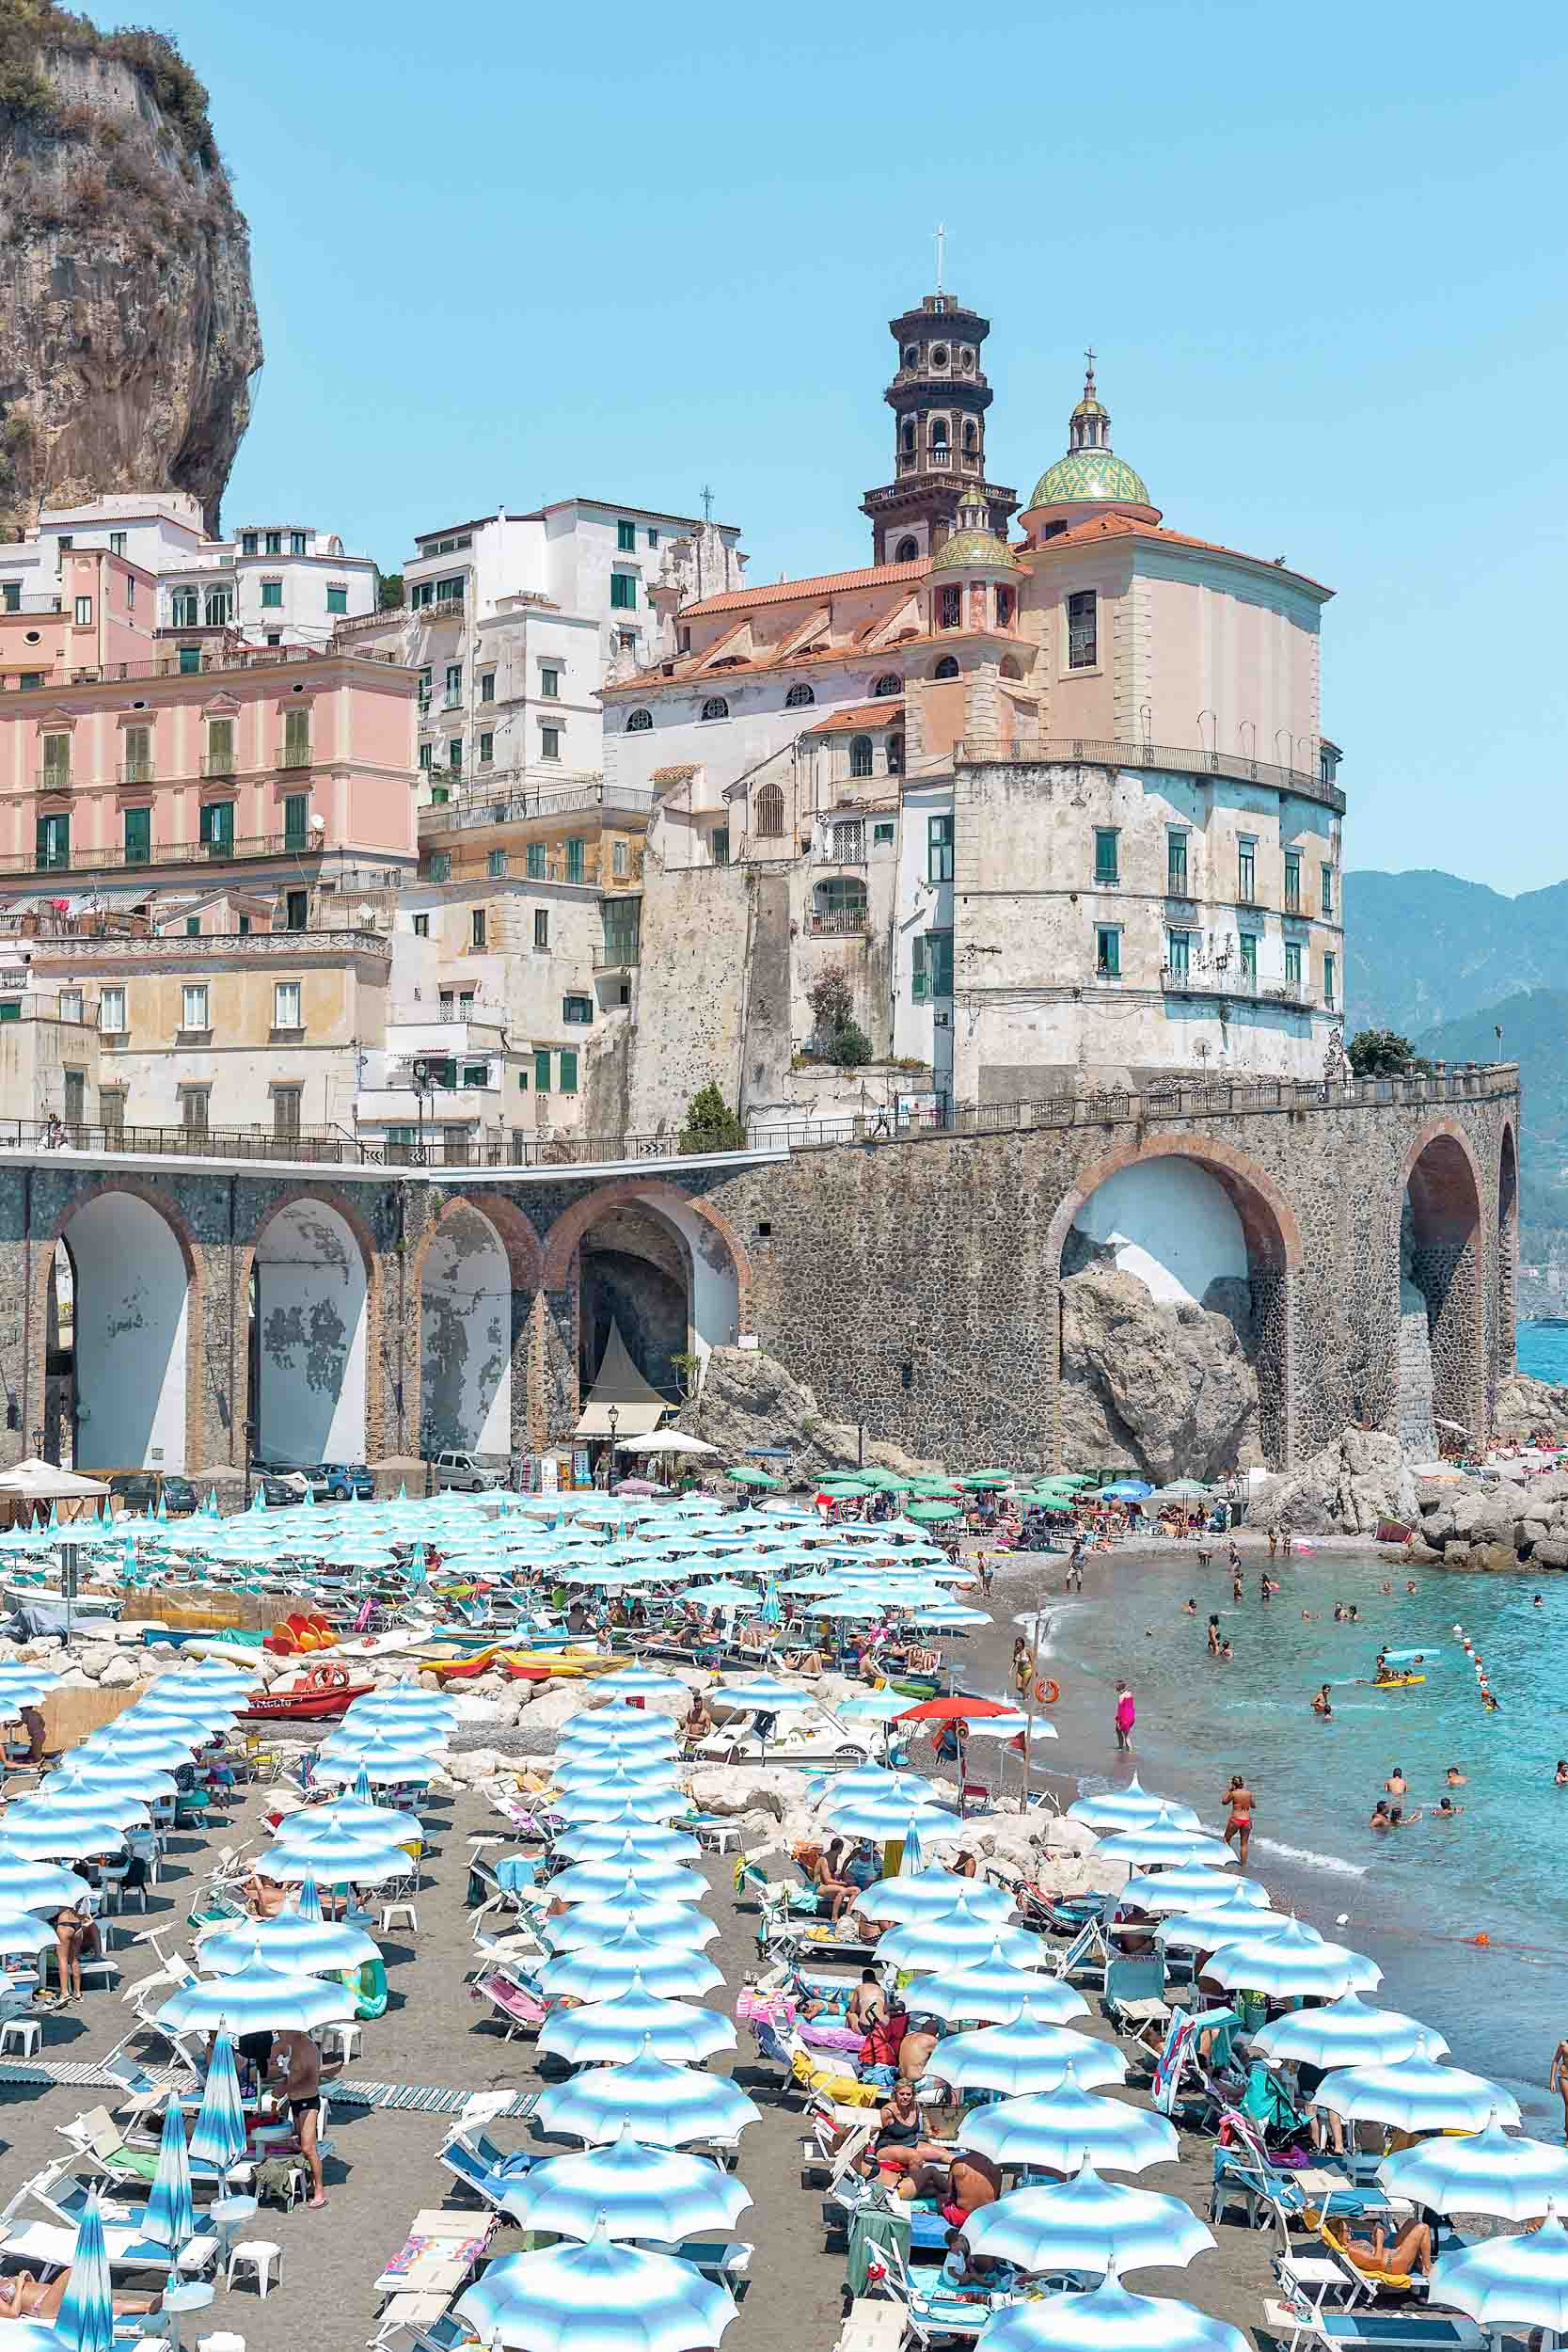 Atrani, the smallest city in all of Italy